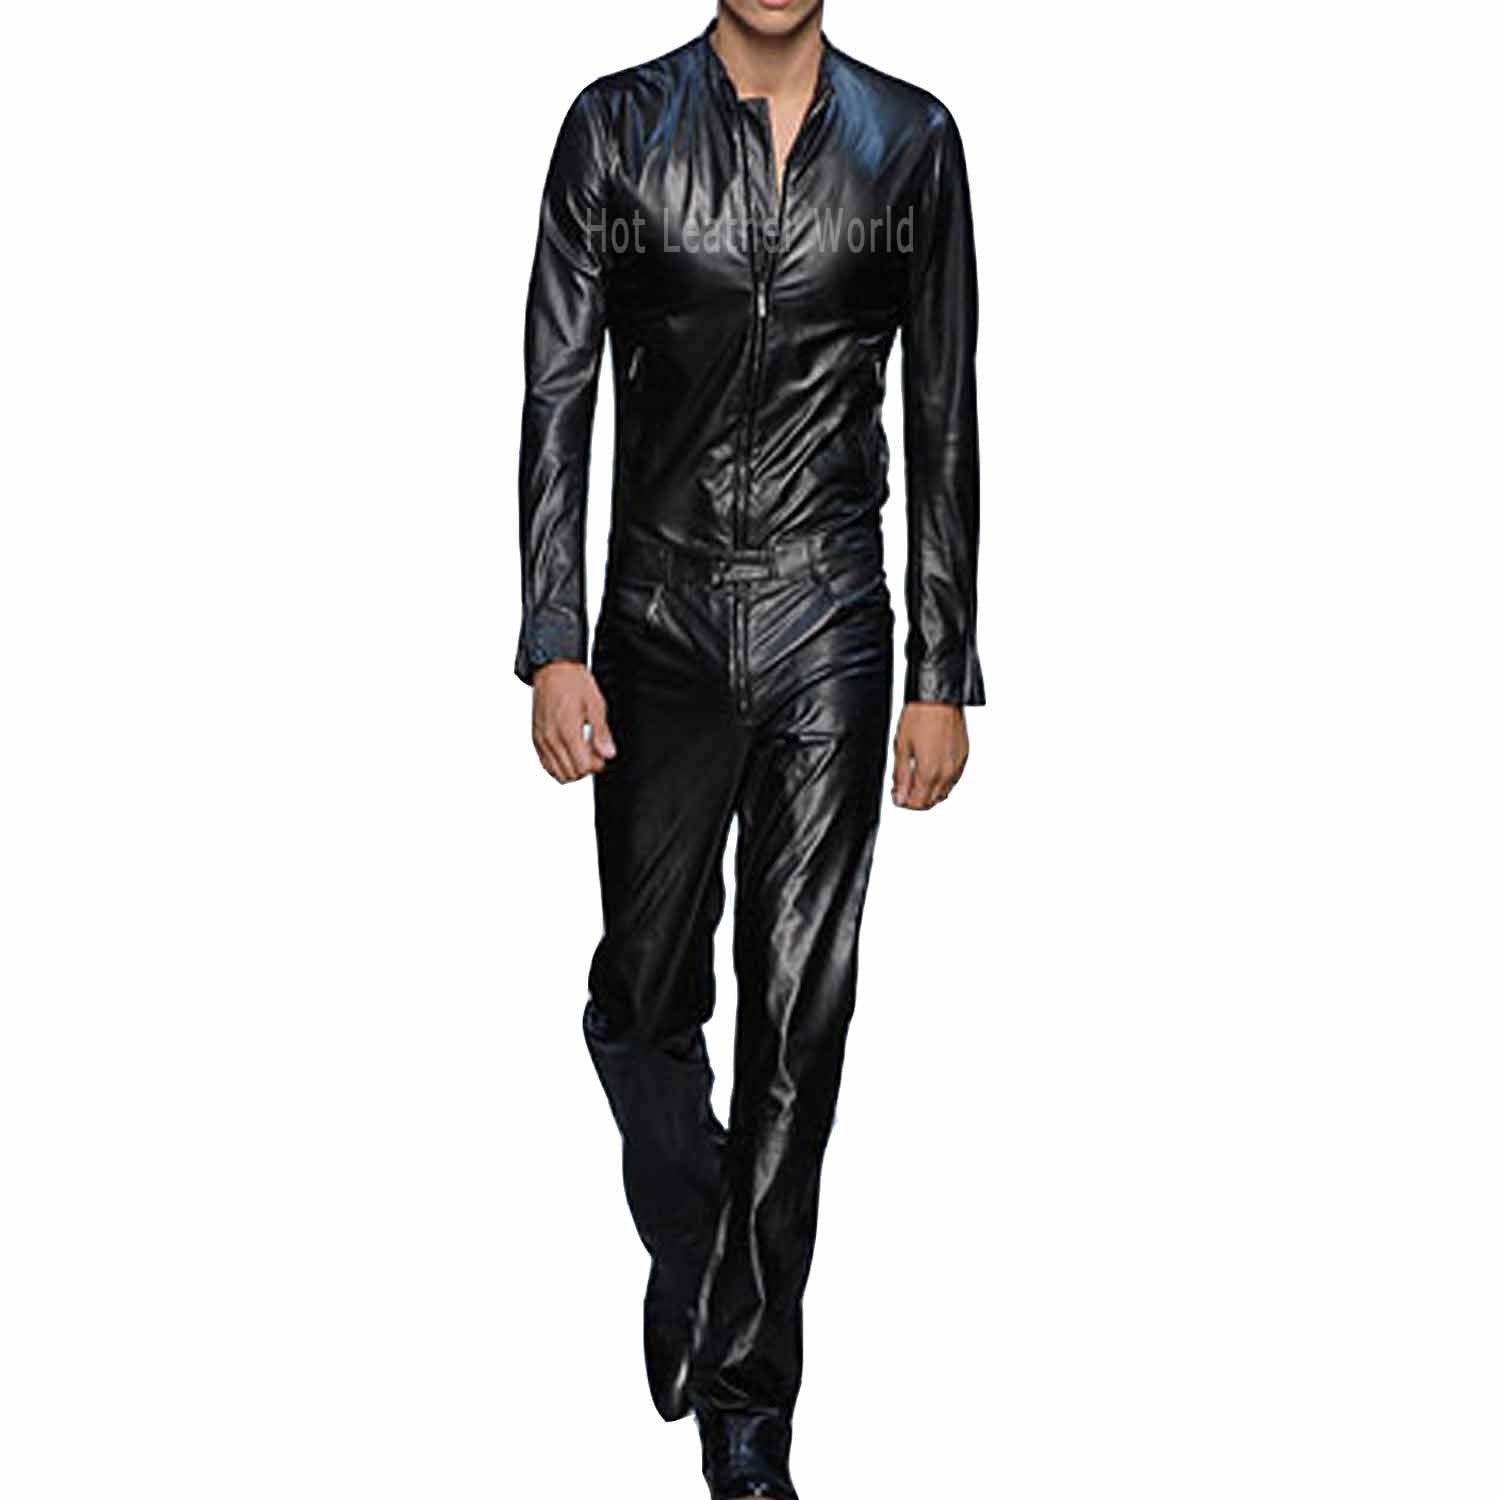 Cool Style Lamb Skin Leather Jumpsuit -  HOTLEATHERWORLD